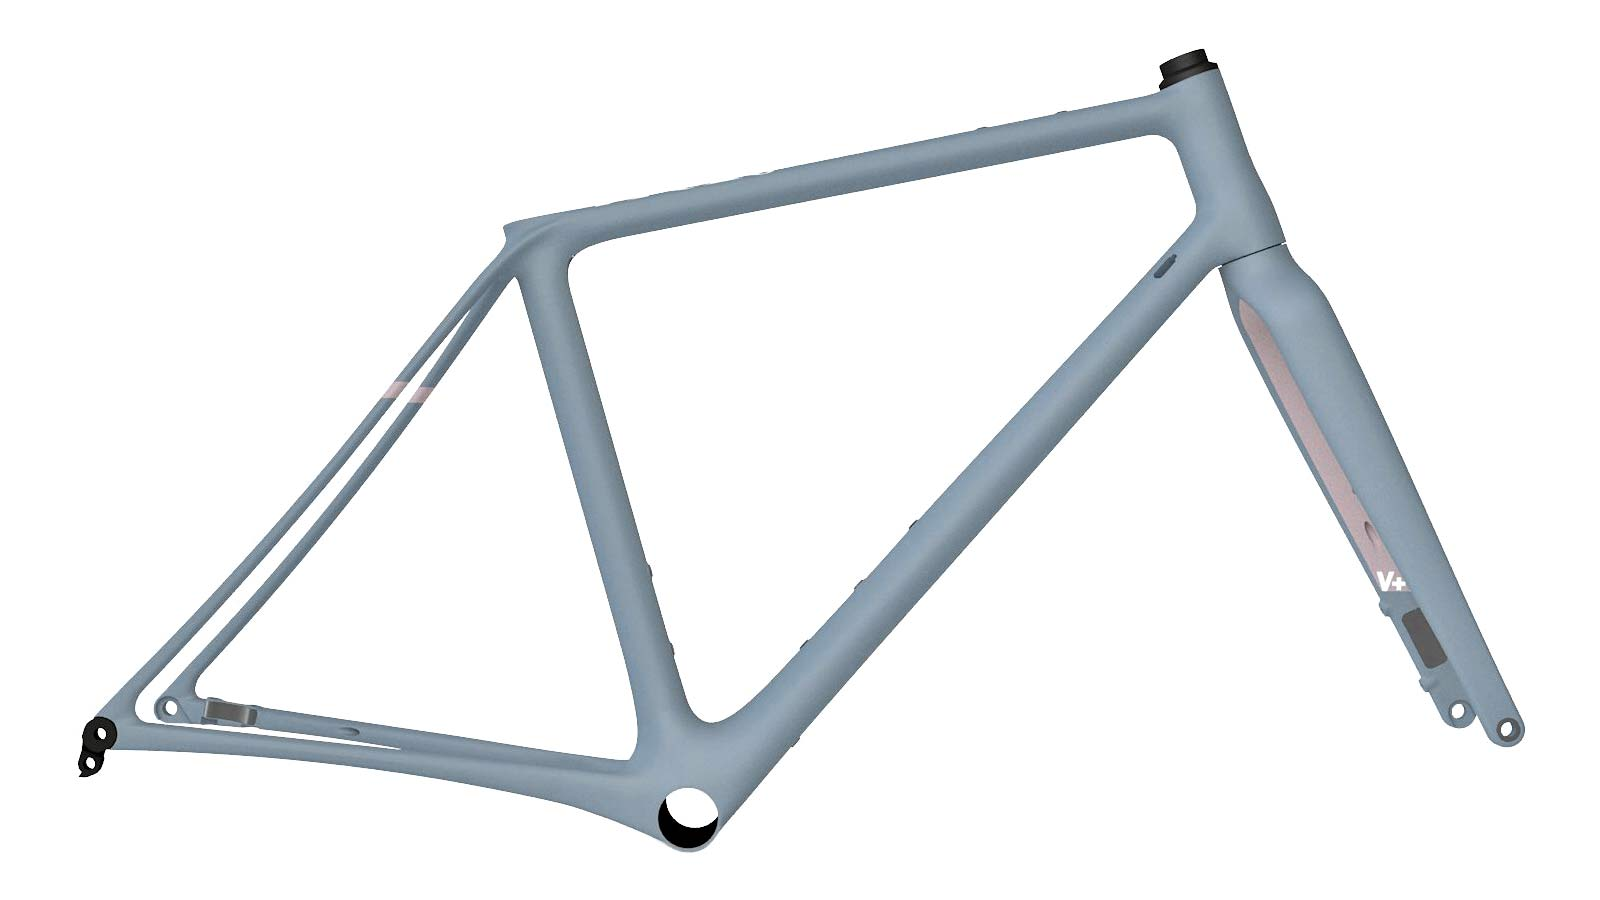 Vielo V+1 gravel bike, updated gen2 lightweight carbon fast gravel race bikes, Alto frameset